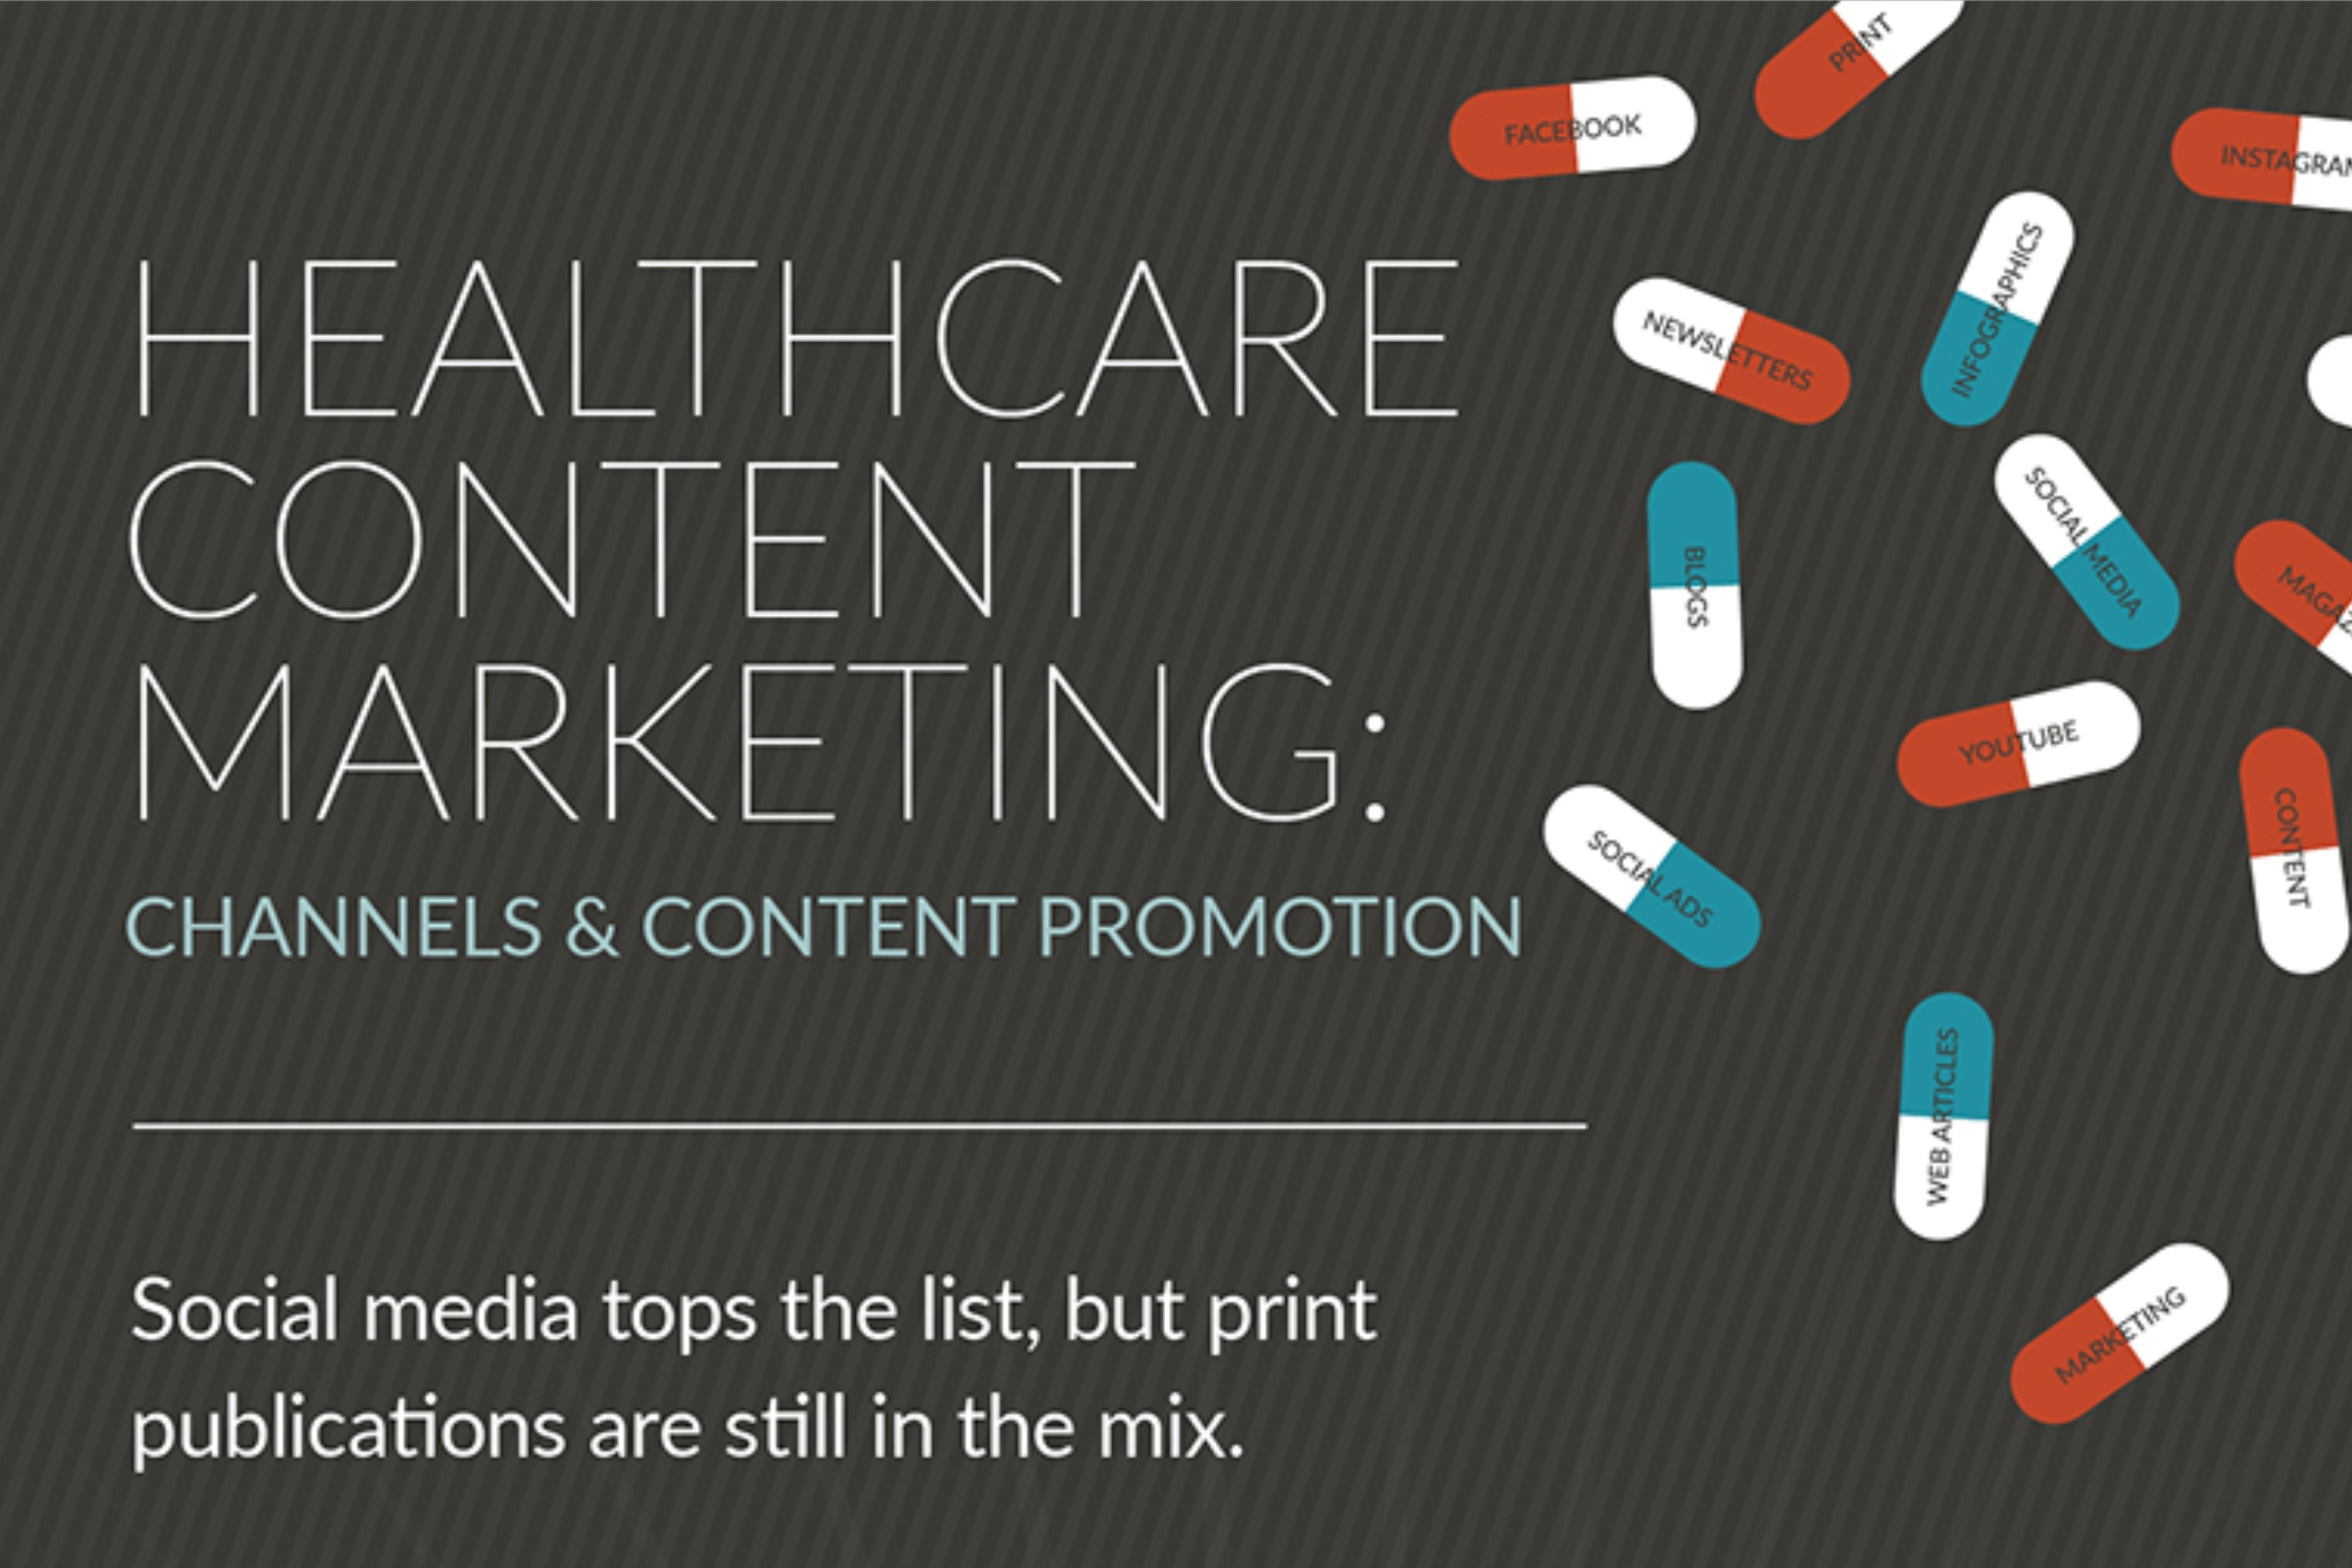 Healthcare Content Marketing_ Channels & Content Promotion (infographic)